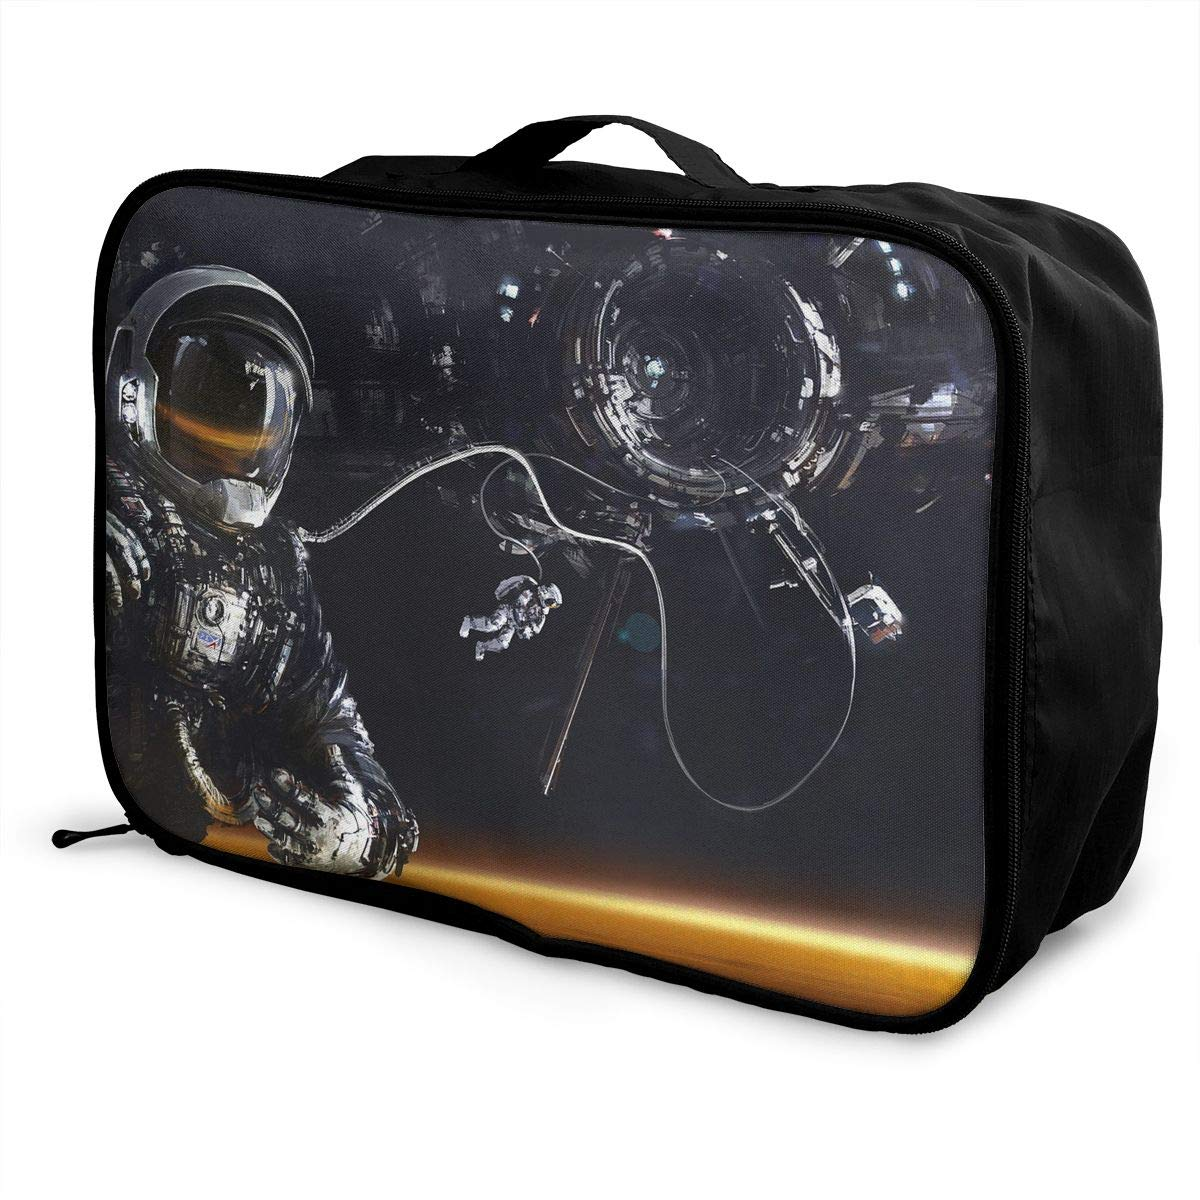 Travel Luggage Duffle Bag Lightweight Portable Handbag Abstract Astronaut Pattern Large Capacity Waterproof Foldable Storage Tote